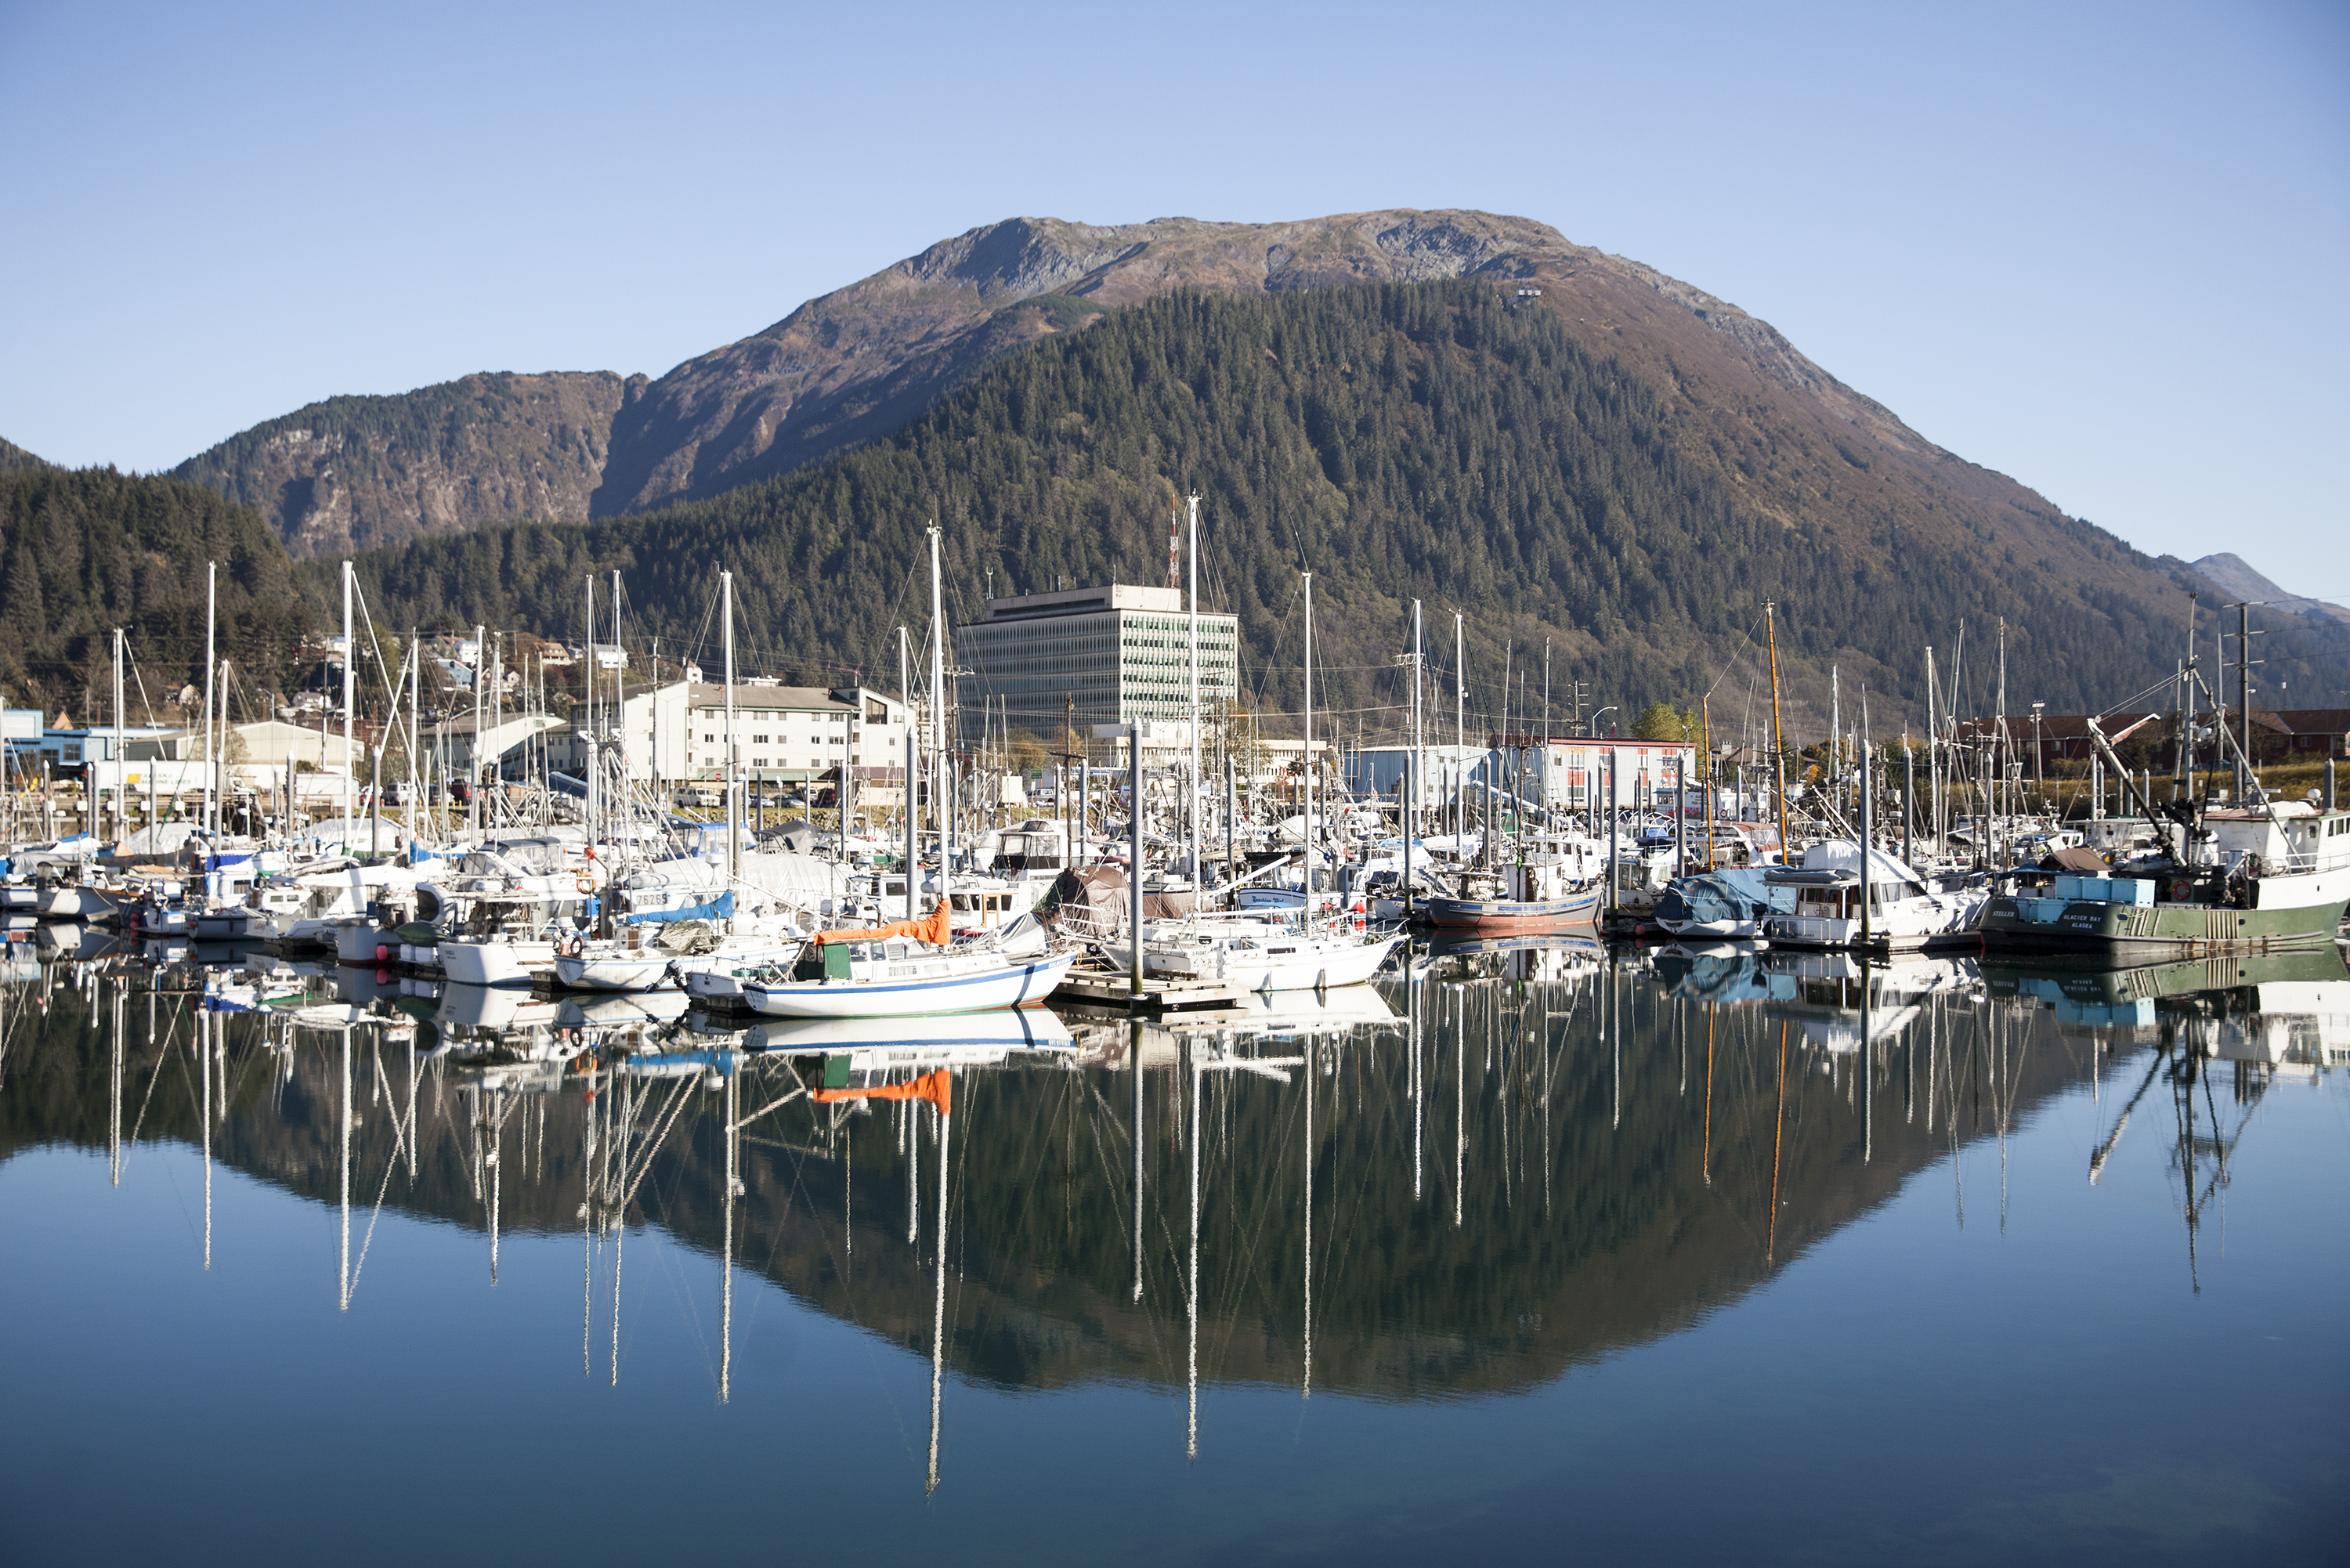 Boats lined up in Harris Harbor on a sunny, clear day Wednesday, Oct. 12, 2016 in downtown Juneau, Alaska.  (Photo by Rashah McChesney/Alaska's Energy Desk)